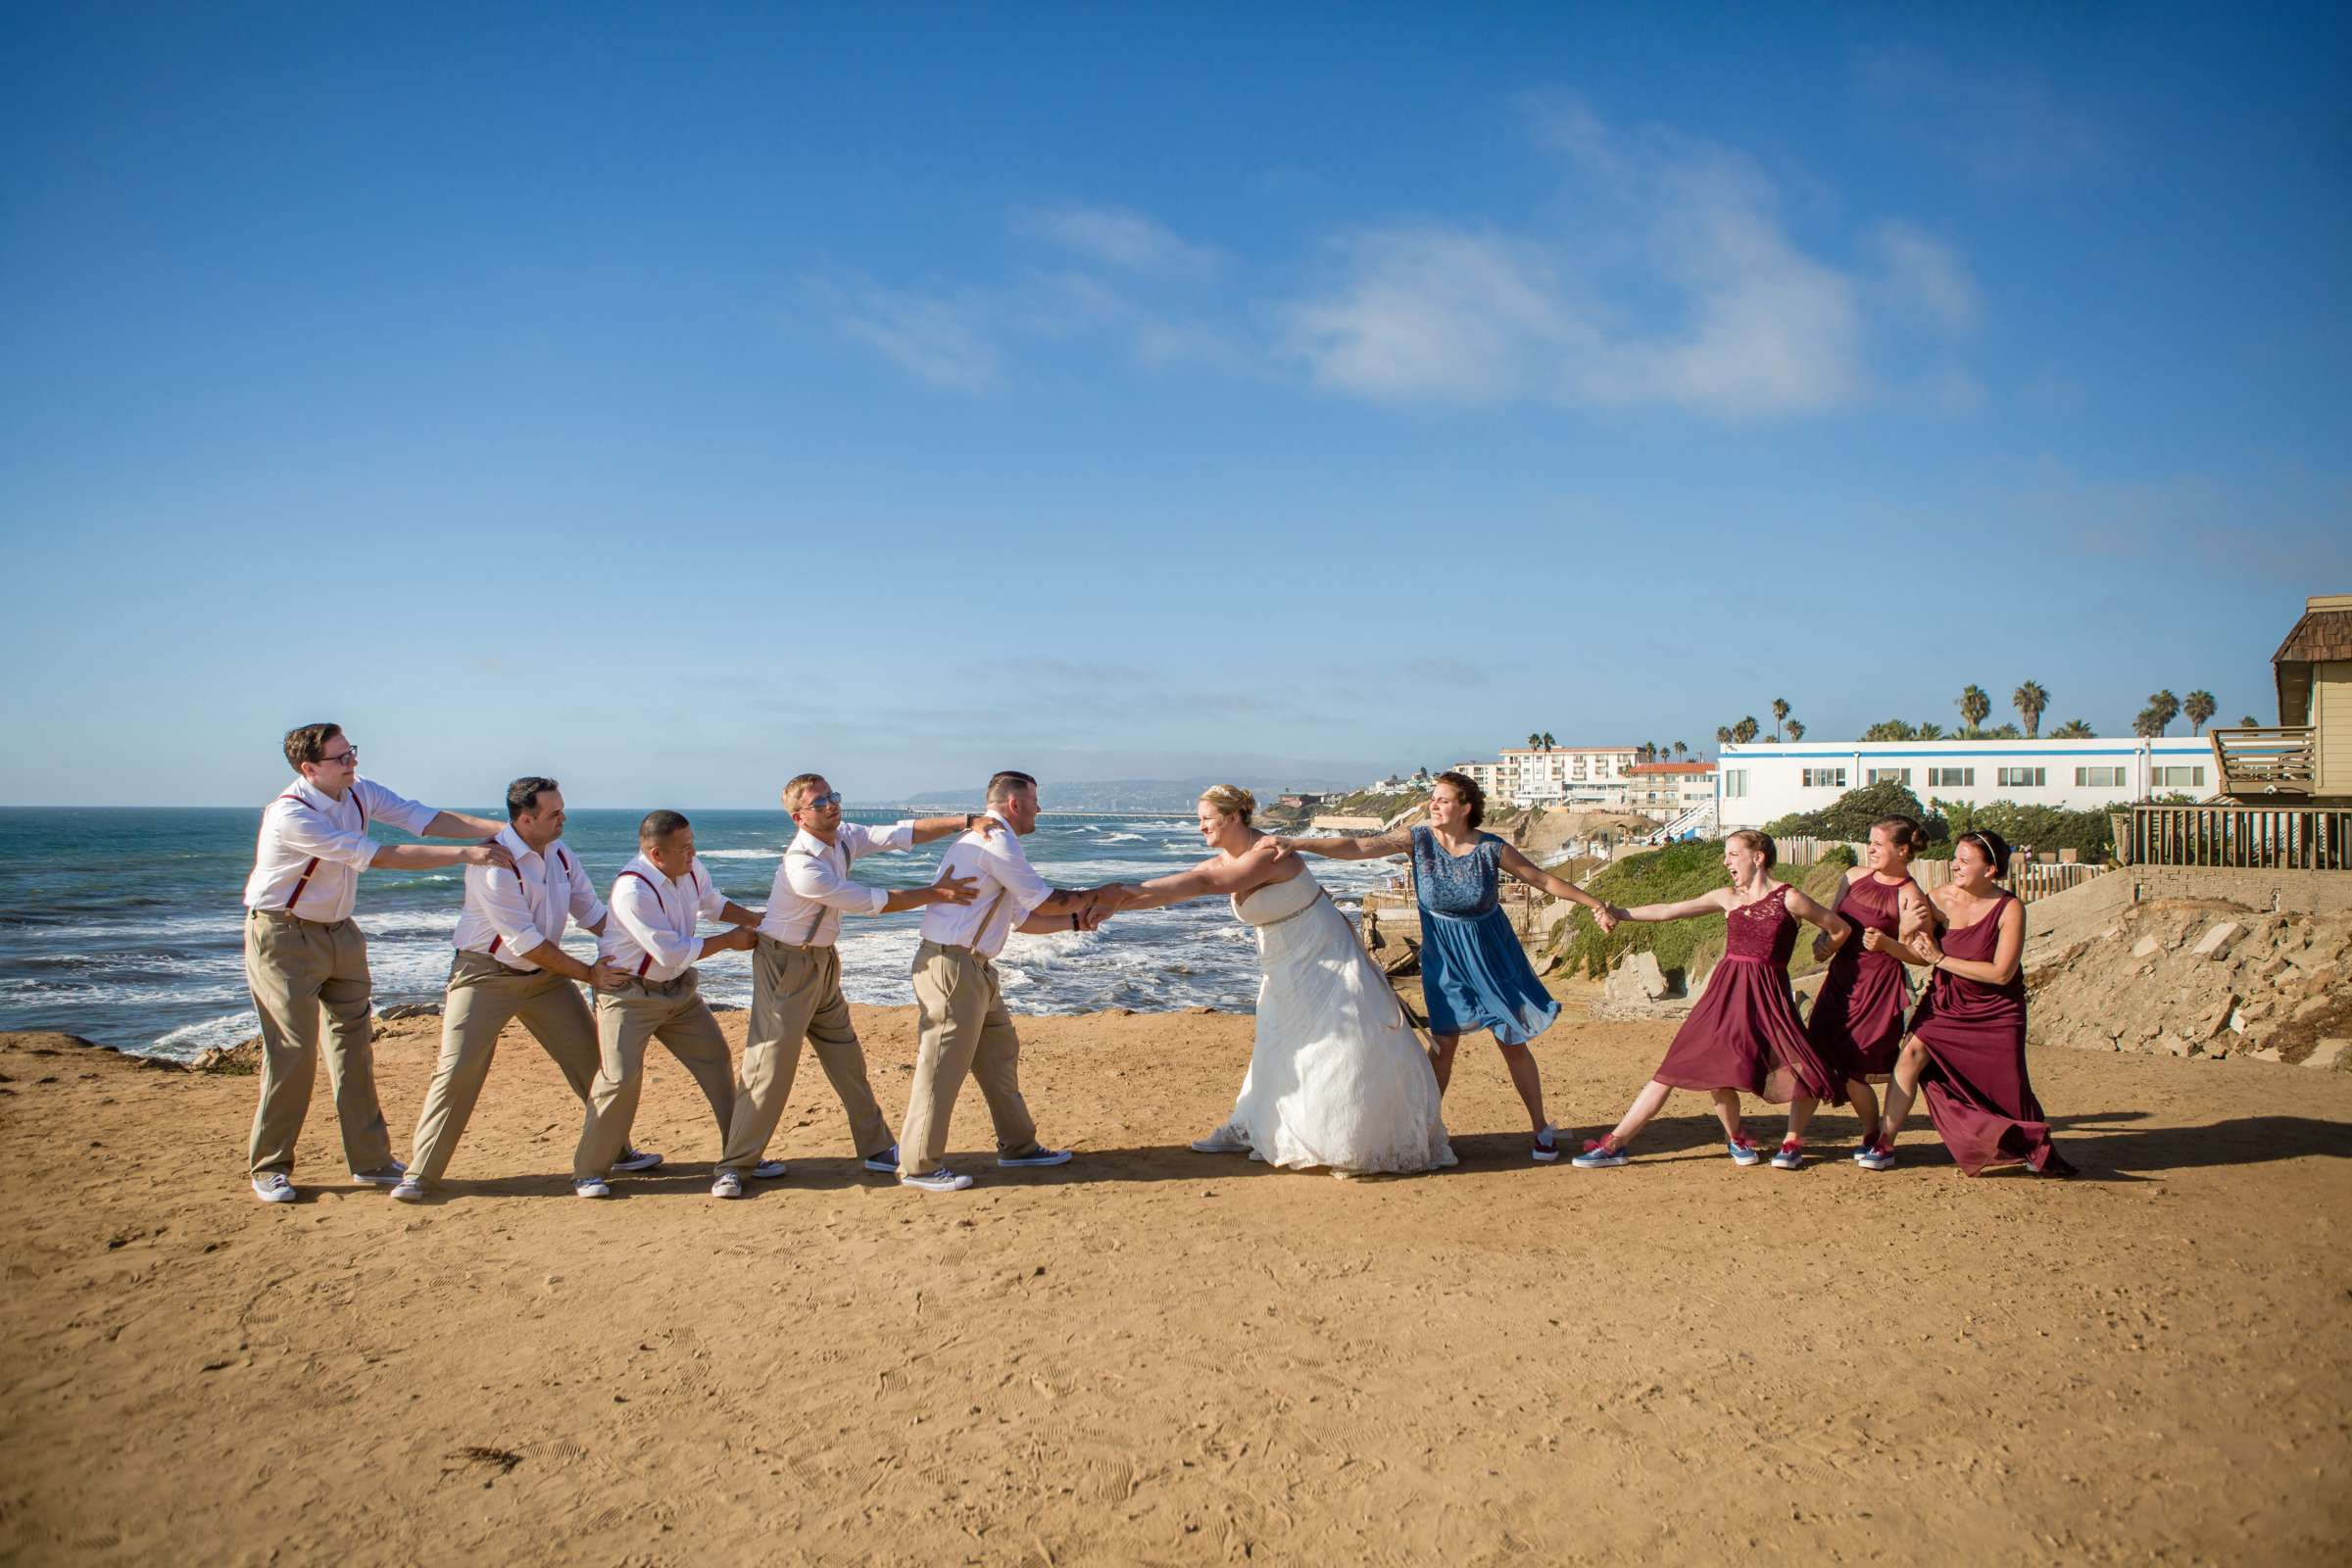 The Inn at Sunset Cliffs Wedding, Melinda and Benjamin Wedding Photo #11 by True Photography